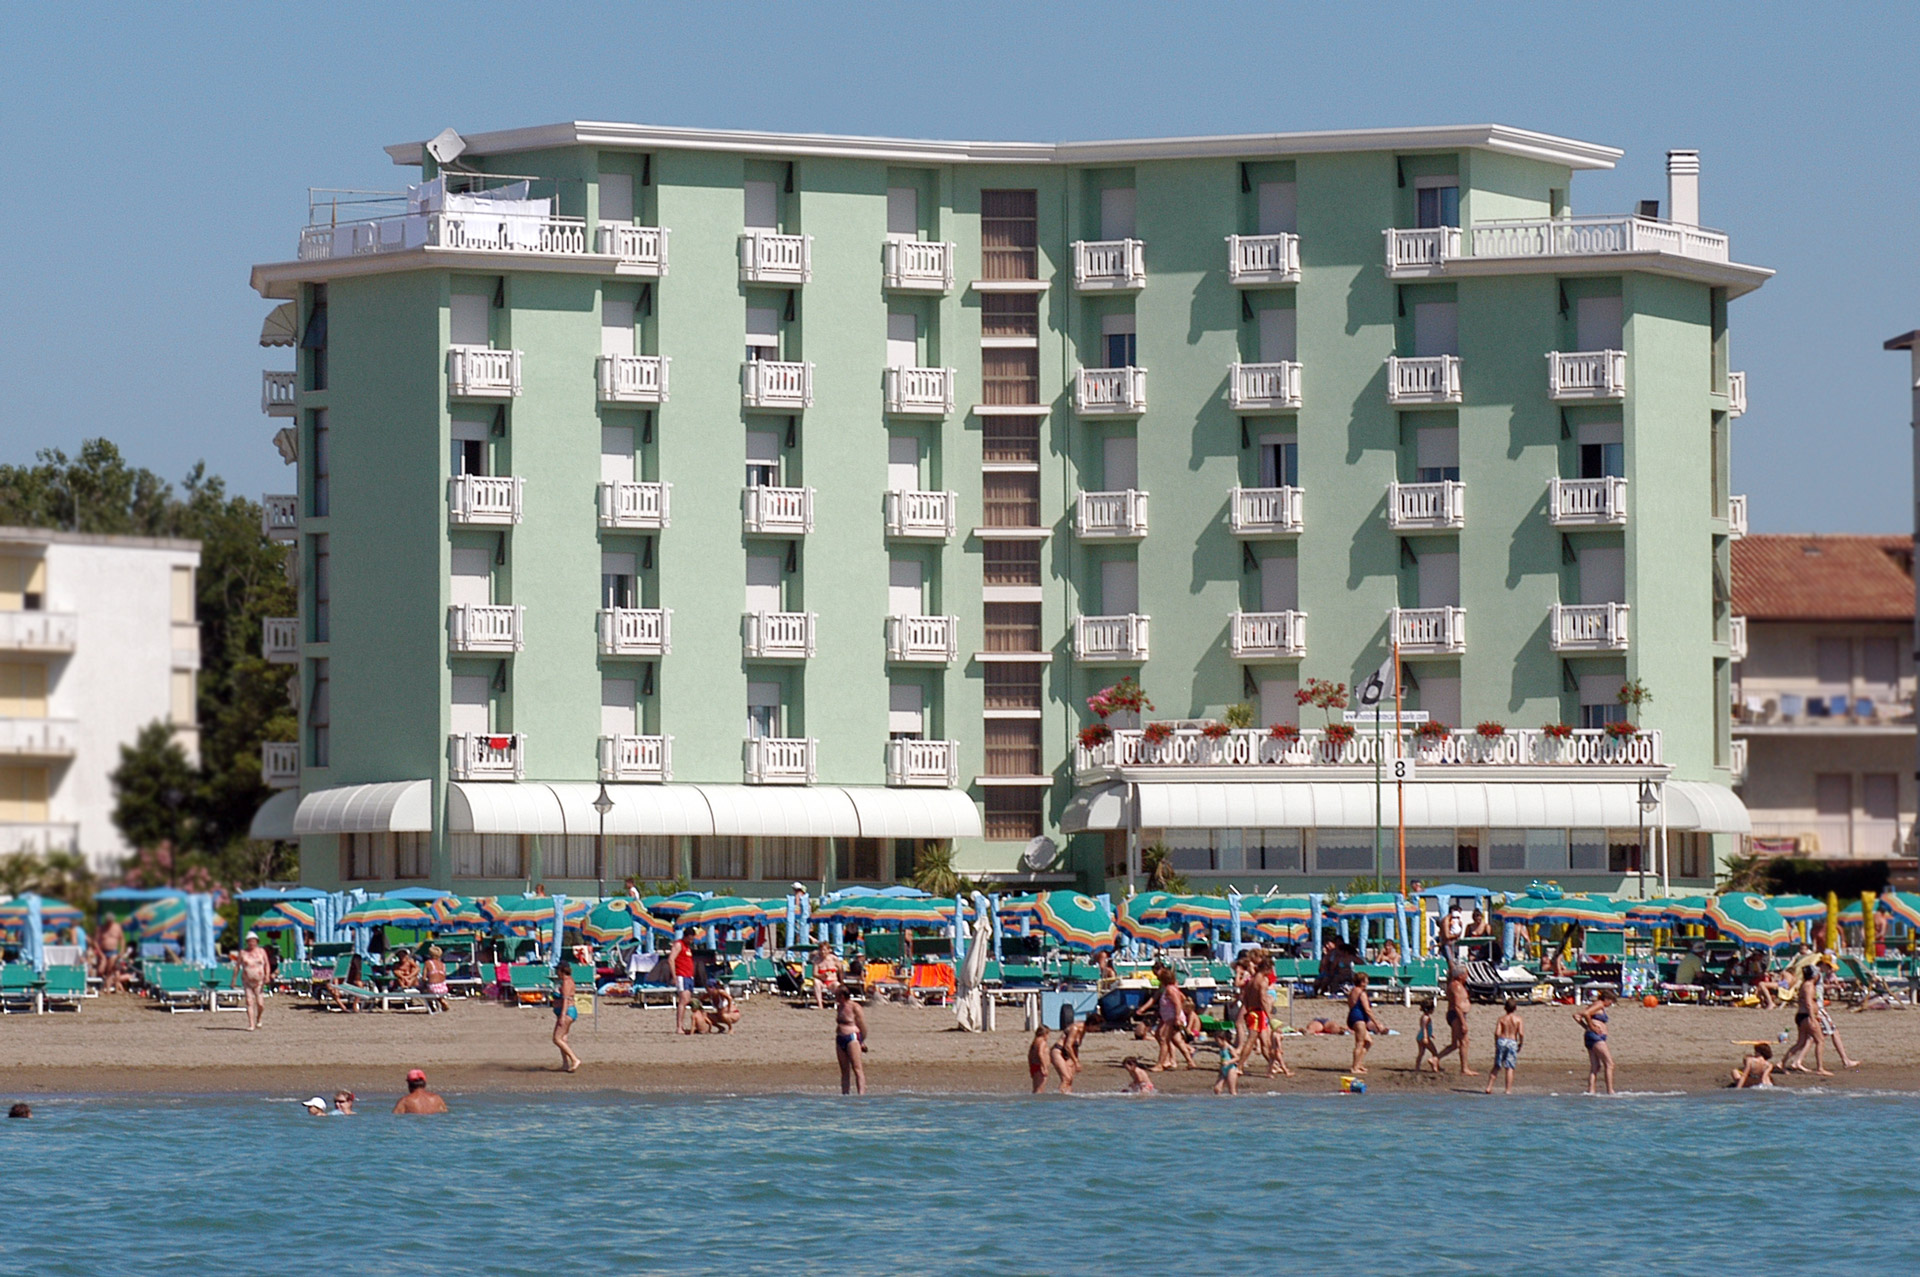 Hotel tre stelle frontemare a Caorle